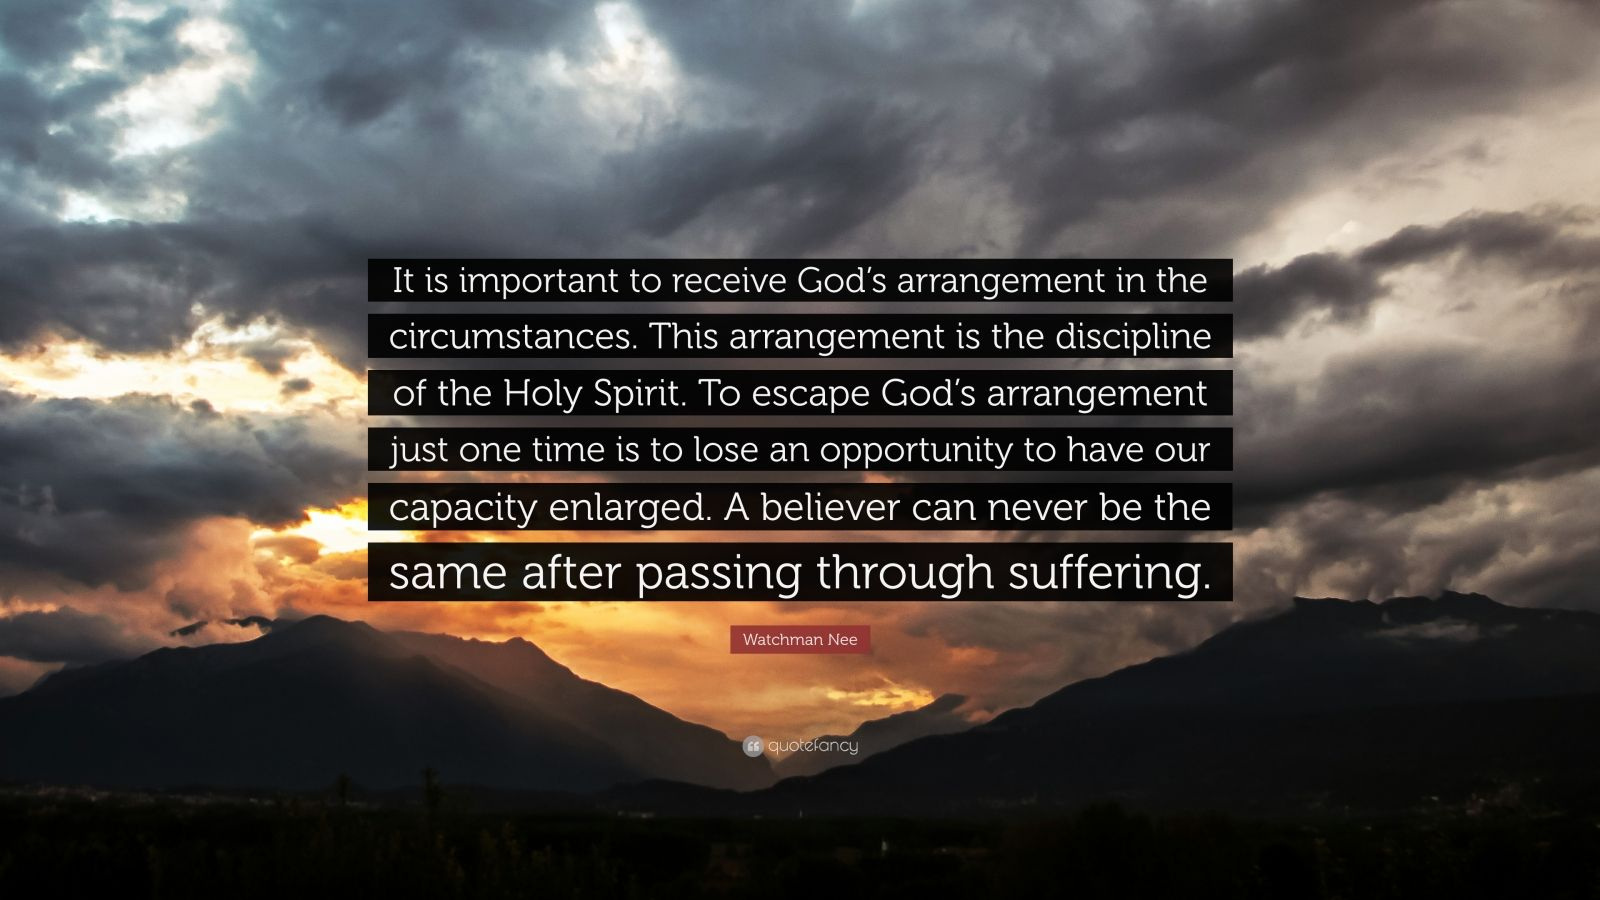 """Watchman Nee Quote: """"It is important to receive God's arrangement in the circumstances. This arrangement is the discipline of the Holy Spirit. To escape God's arrangement just one time is to lose an opportunity to have our capacity enlarged. A believer can never be the same after passing through suffering."""""""